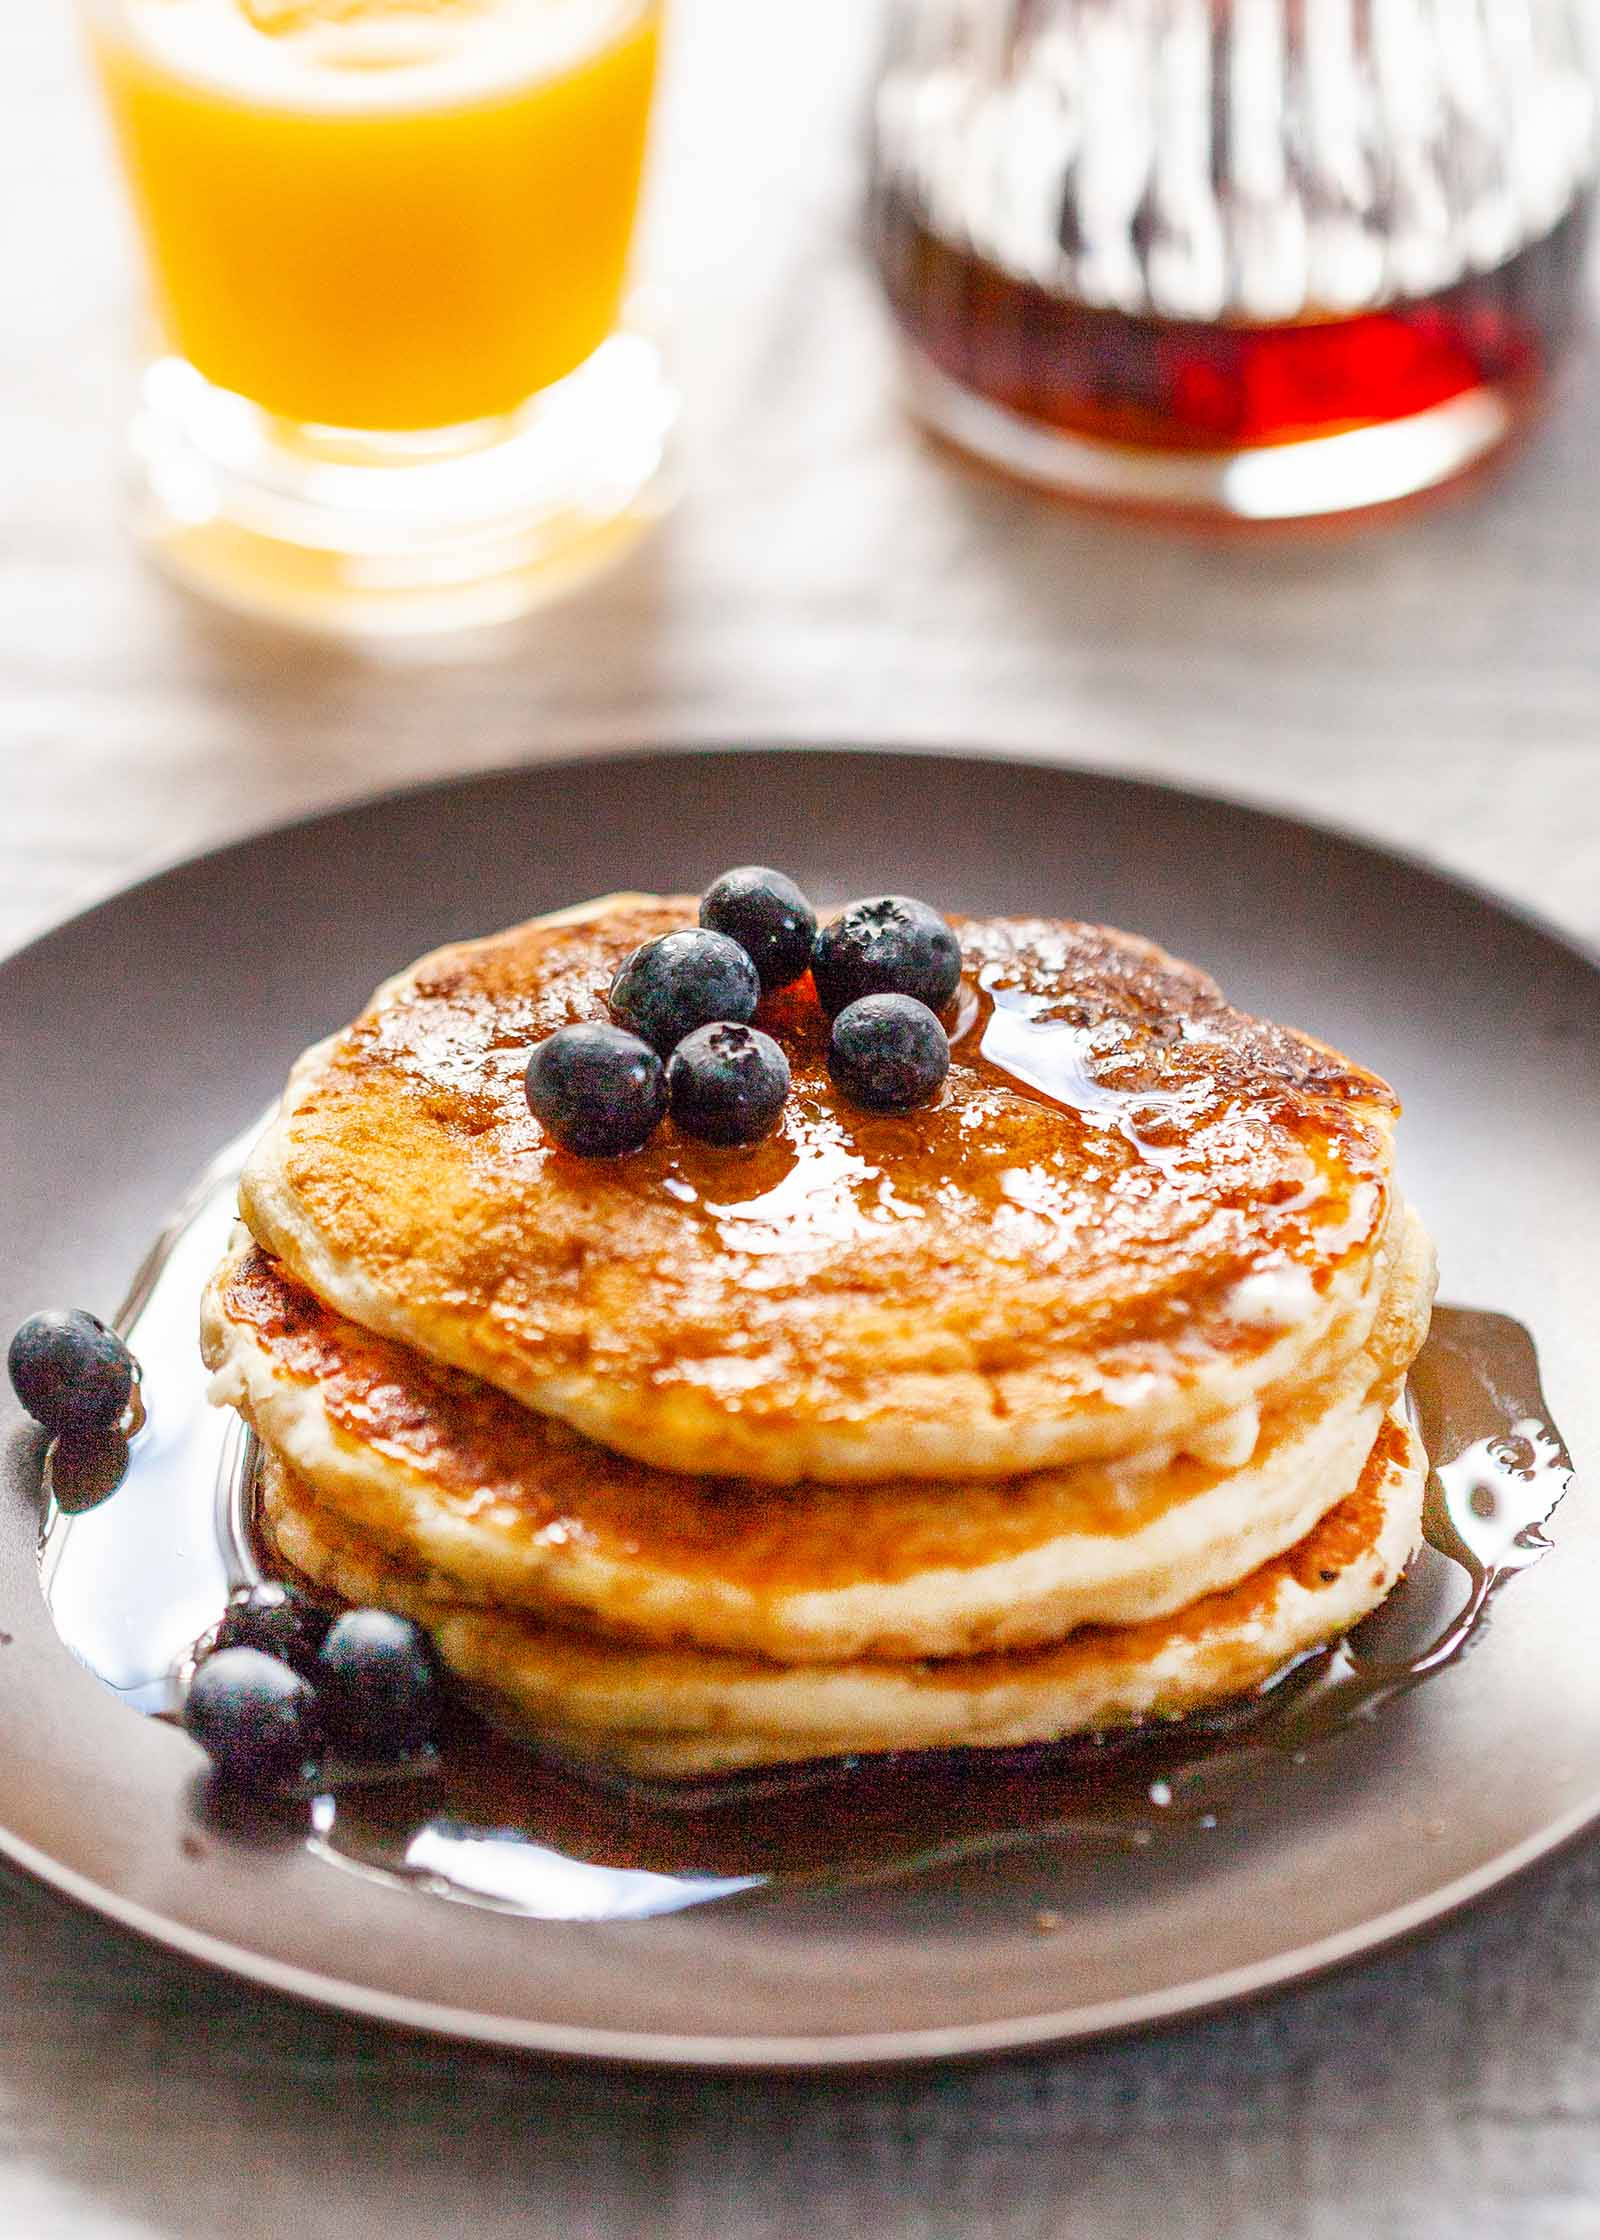 How To Make Buttermilk Pancakes  How to Make Fluffy Buttermilk Pancakes Recipe